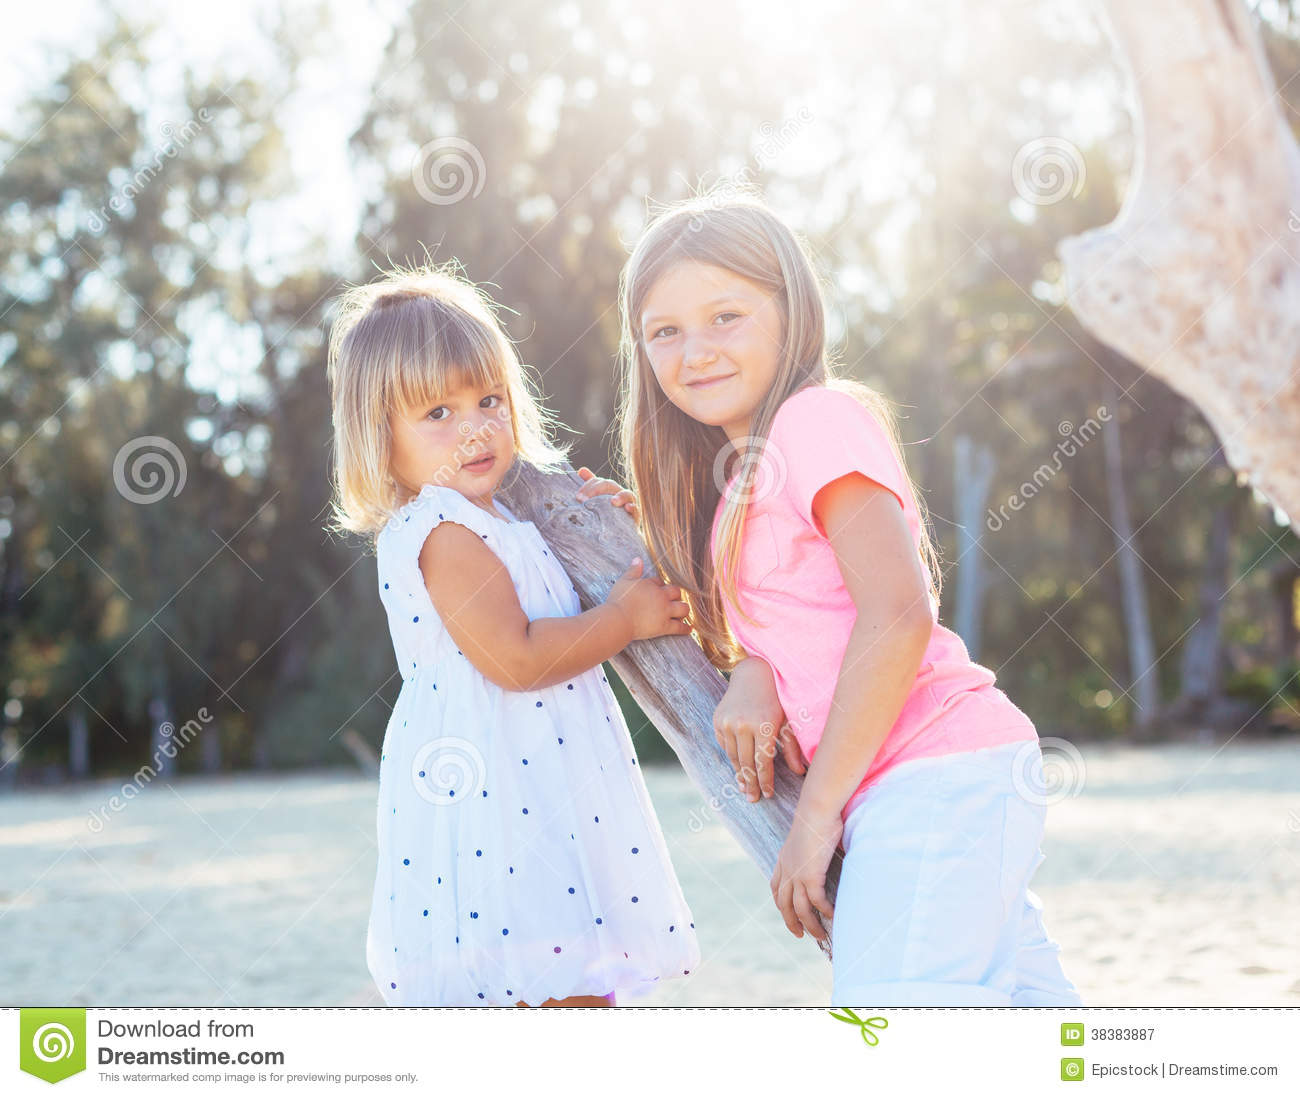 Adorable Little Girl Playing With Beach Toys During: Adorable Young Sisters At The Beach Stock Image